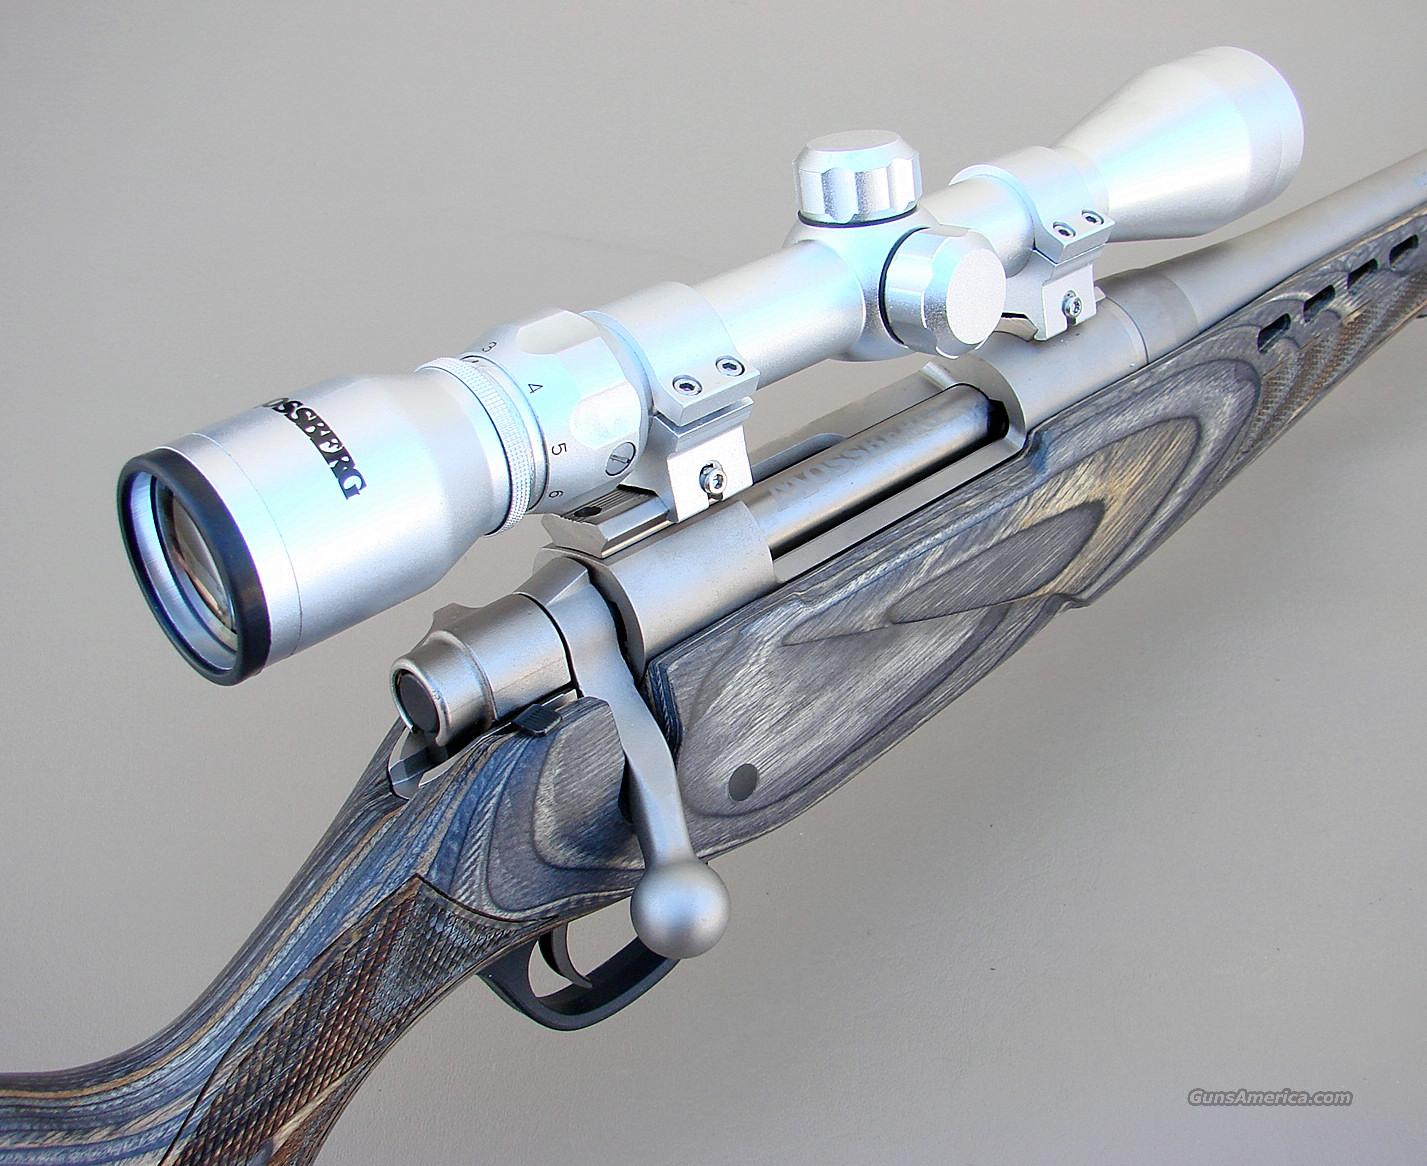 Mossberg 4X4 Rifle in 300 WinMag with Scope Ducks Unlimited Version  Guns > Rifles > Mossberg Rifles > 4x4 > Sporting